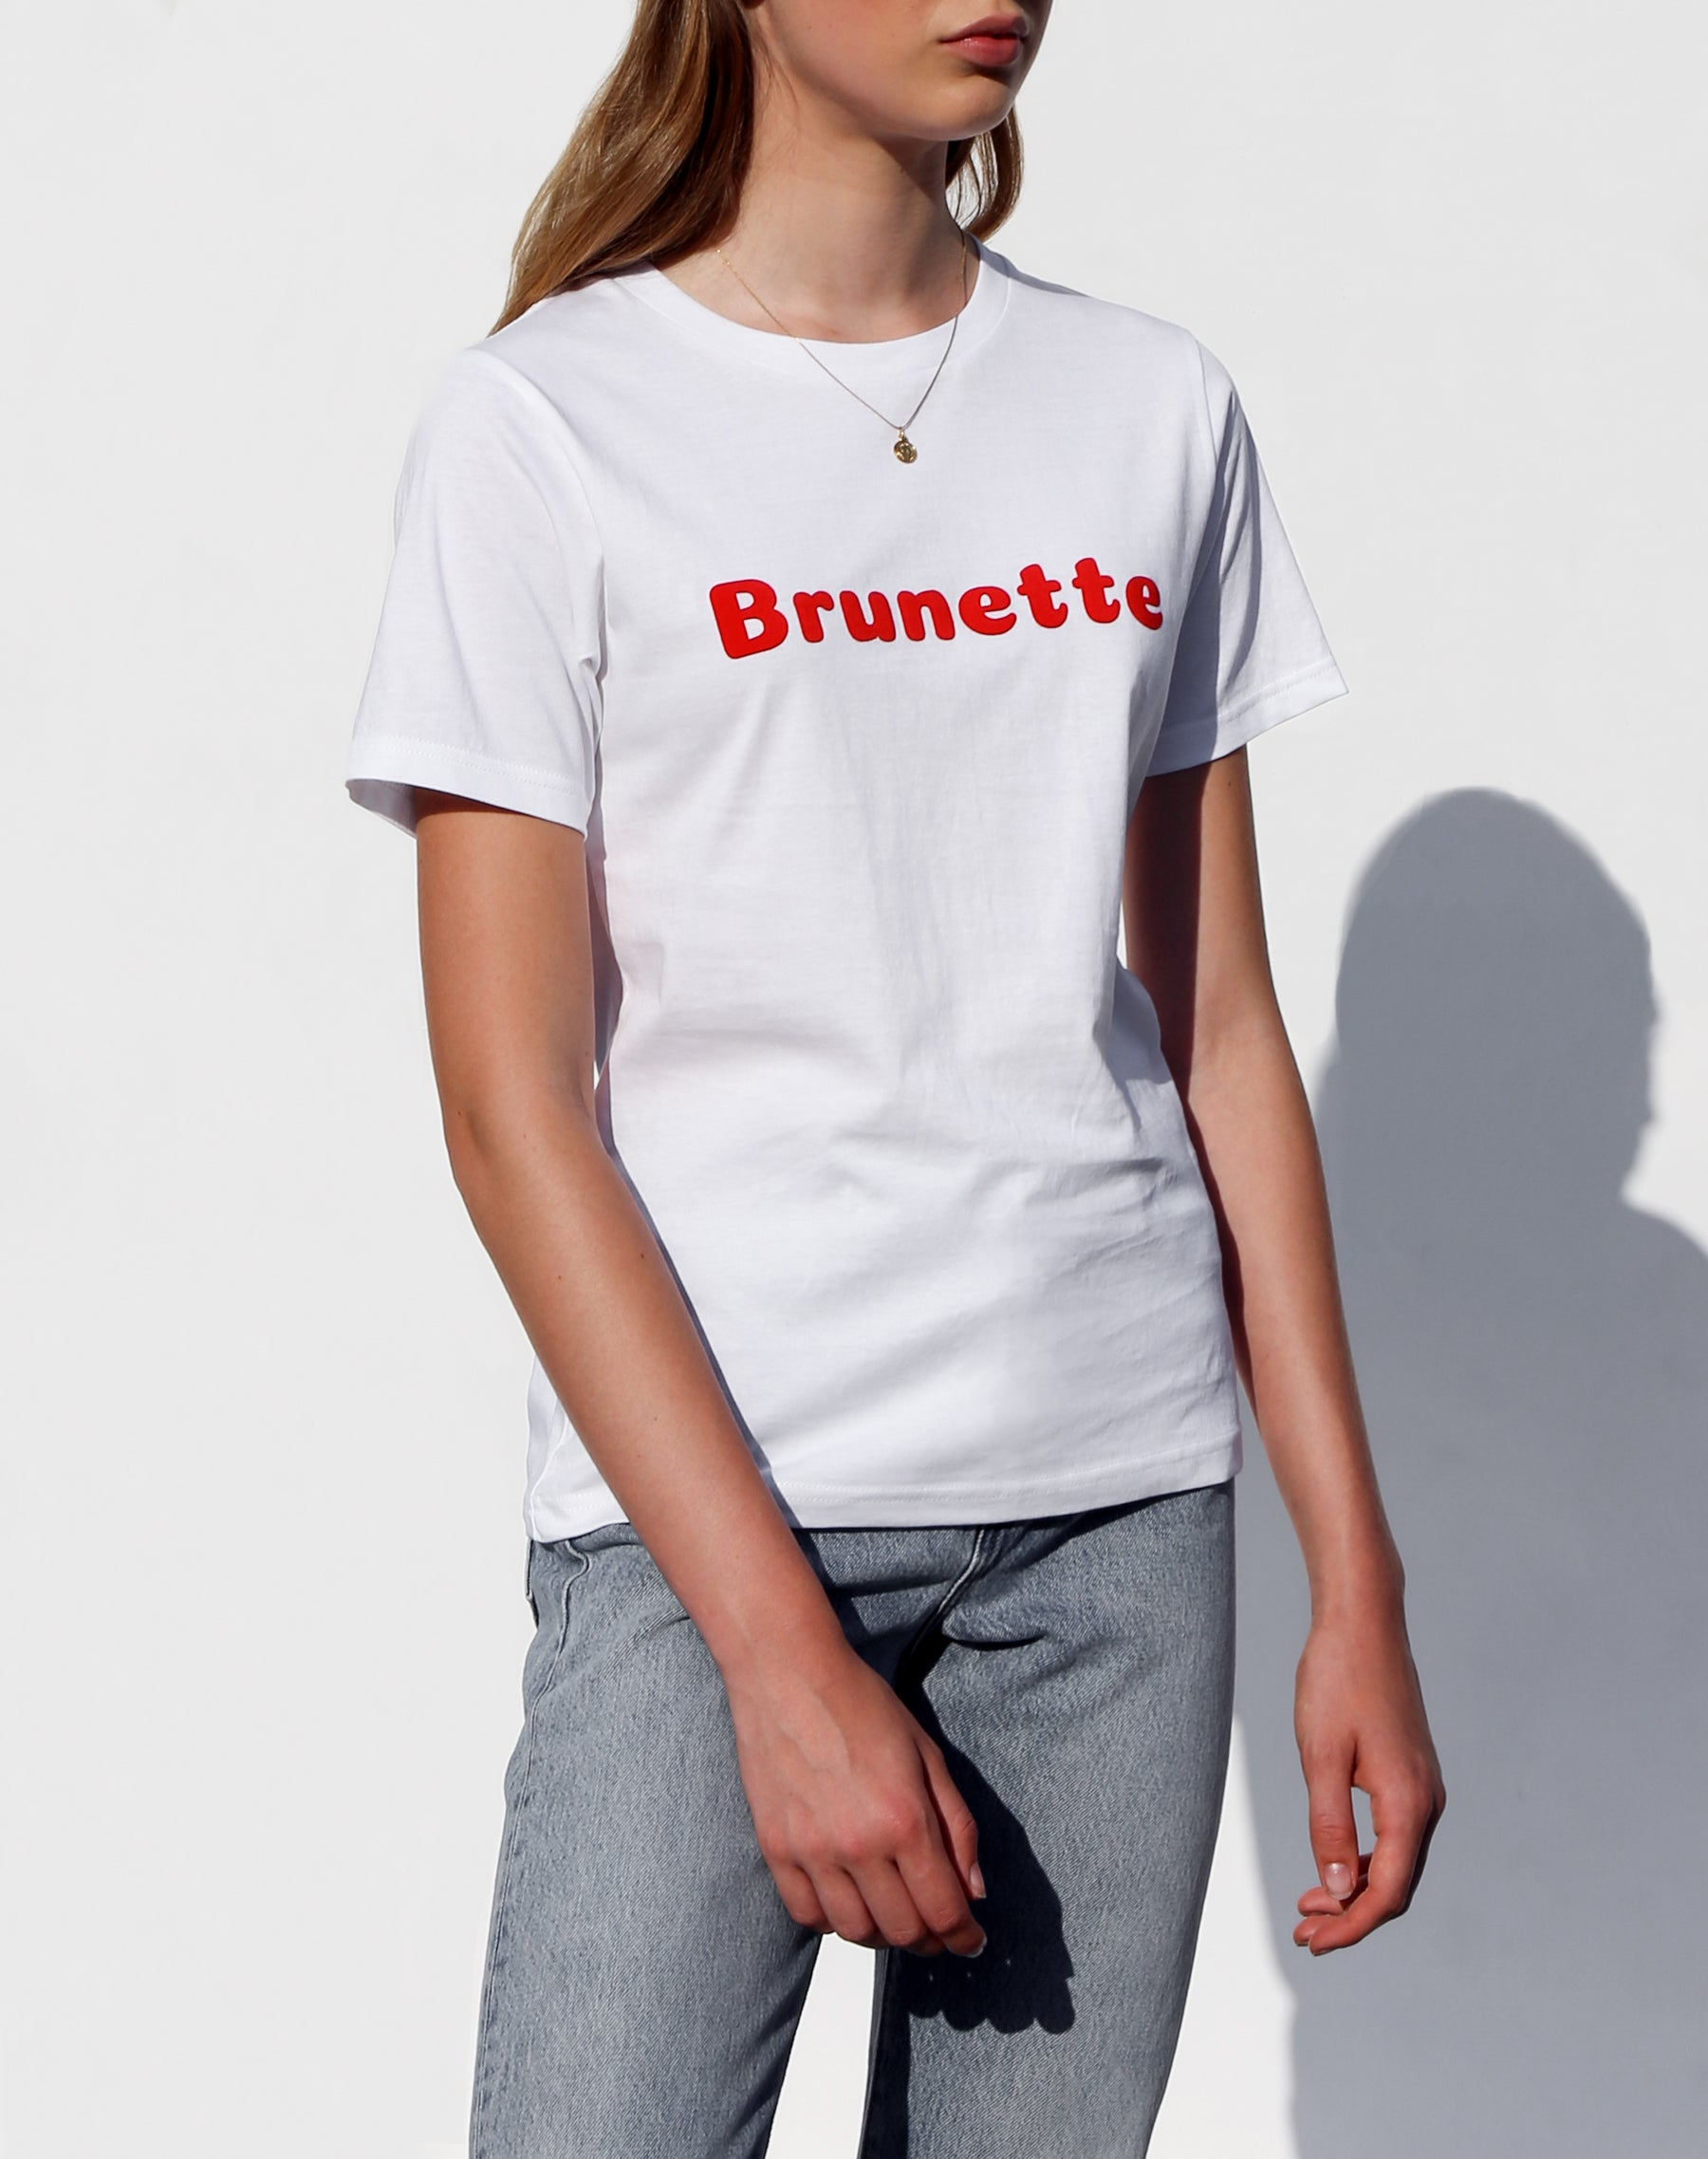 Side photo of the Brunette classic crew neck tee in white for the Canada Day collection by Brunette the Label.